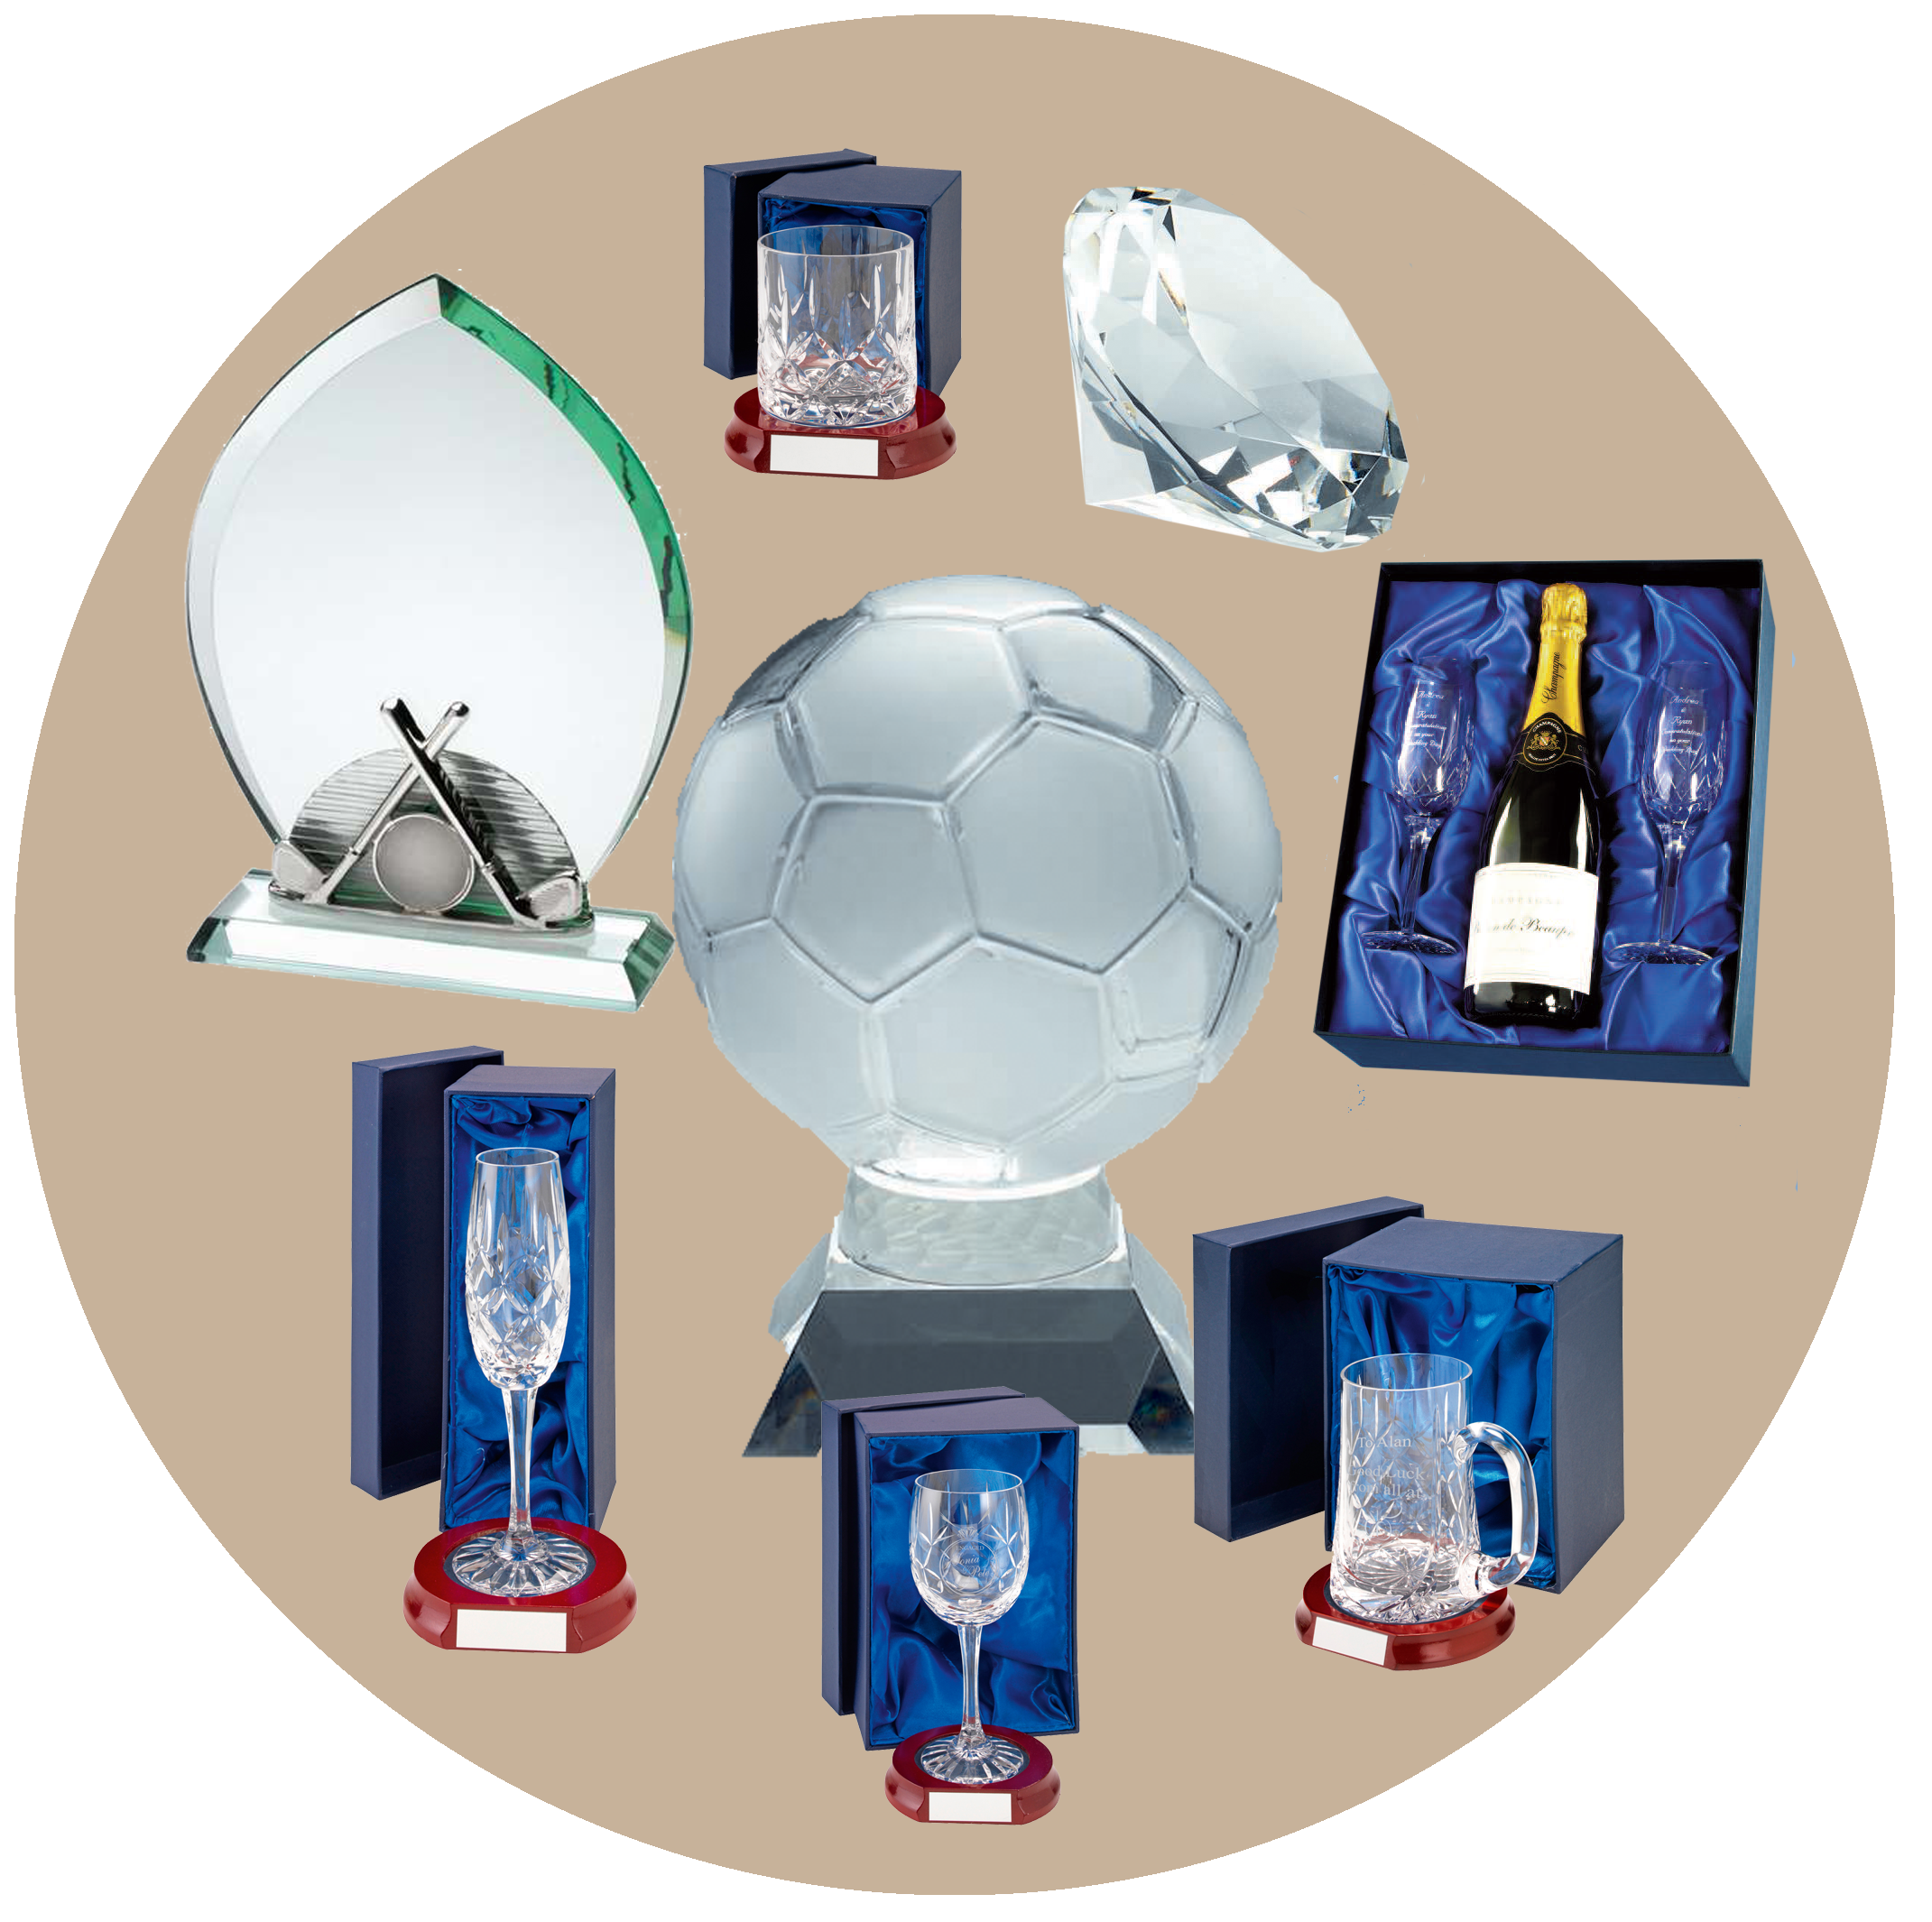 Trophies engraving embroidery corporate gifts gibbcraft